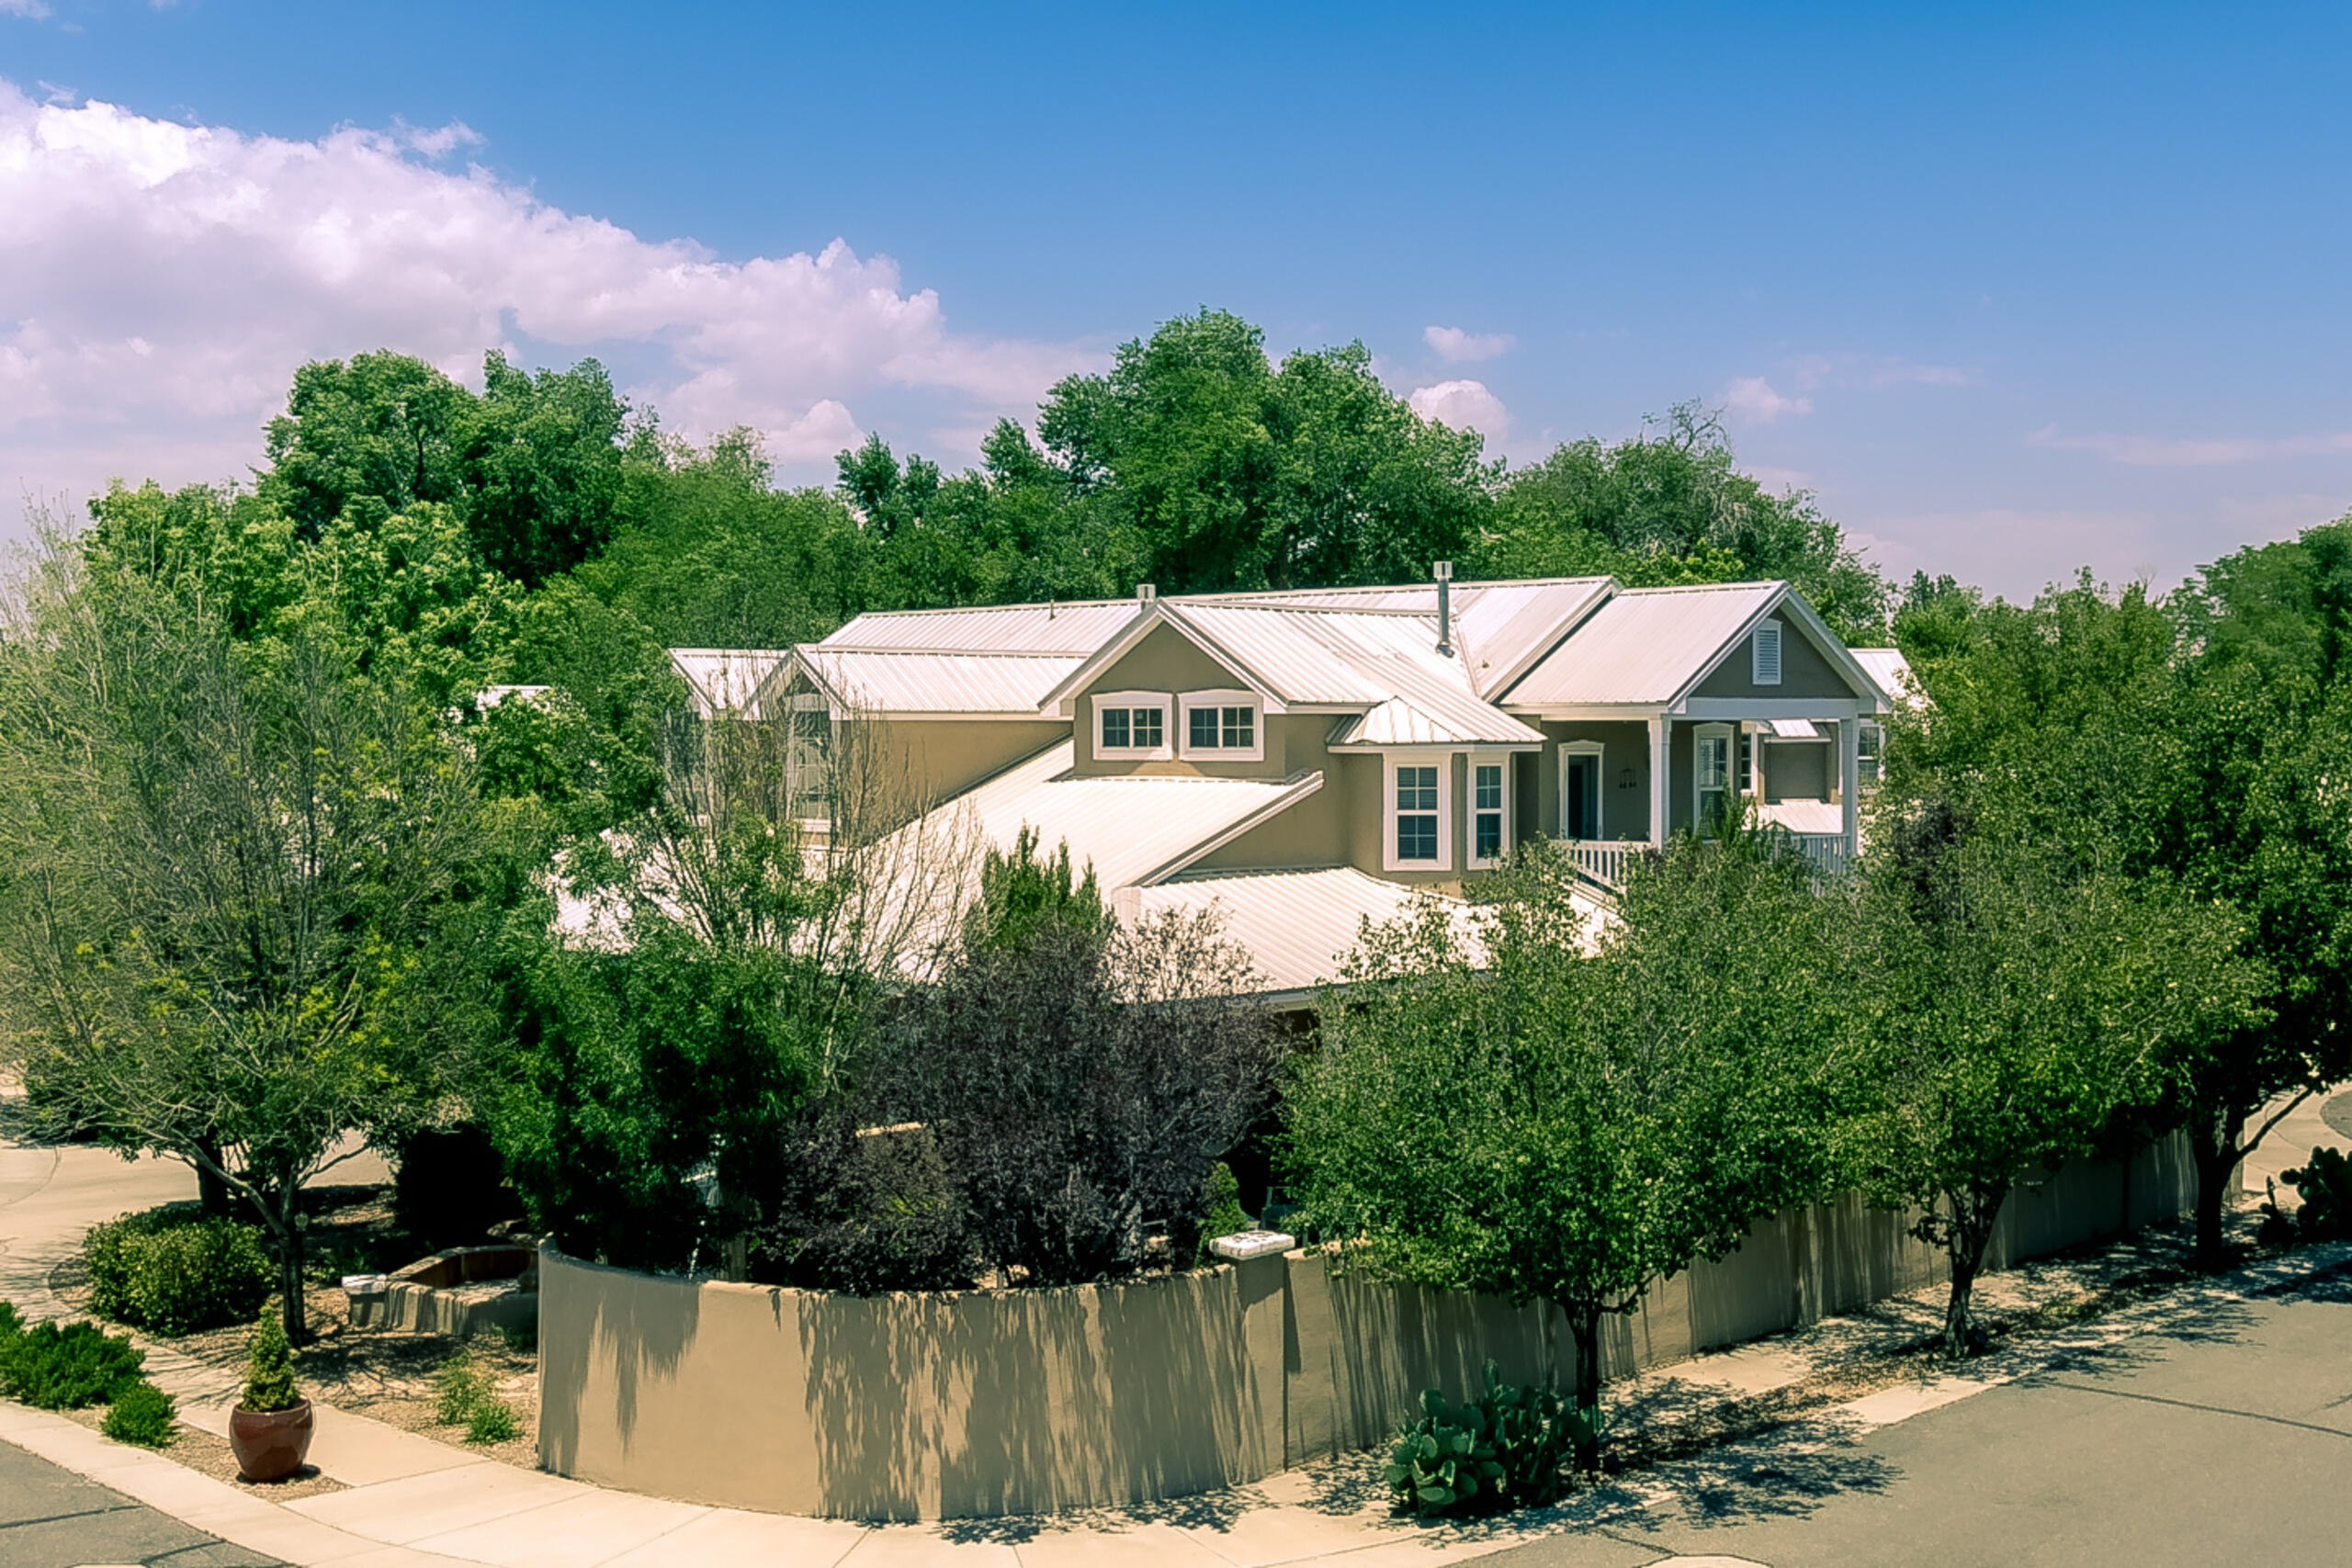 Masterfully designed former builder Model Northern NM style home nestled on a 1/4 Acre cul de sac corner lot in the gated  El Manzanito Estates North Valley Albuquerque. Loaded w/builders options & upgrades incl Soaring beam ceilings in main living area, Diamond plaster FP between living rm & kitchen. Brazilian Teak hardwood  floors. Spacious kitchen features Hickory Cabinets, granite counter tops, built in stainless steel gas cooktop, separate convection oven, pantry, island & breakfast bar.  Gracious owners suite features 2-way diamond plaster FP, large walk-in shower, garden tub, dbl sinks, 2 closets & private deck w/views. Relaxing east facing covered flagstone patio w/water features & mature landscaping, Spacious 2nd & 3rd bedroom w/Jack & Jill bathroom. 2nd owners suite downstairs.